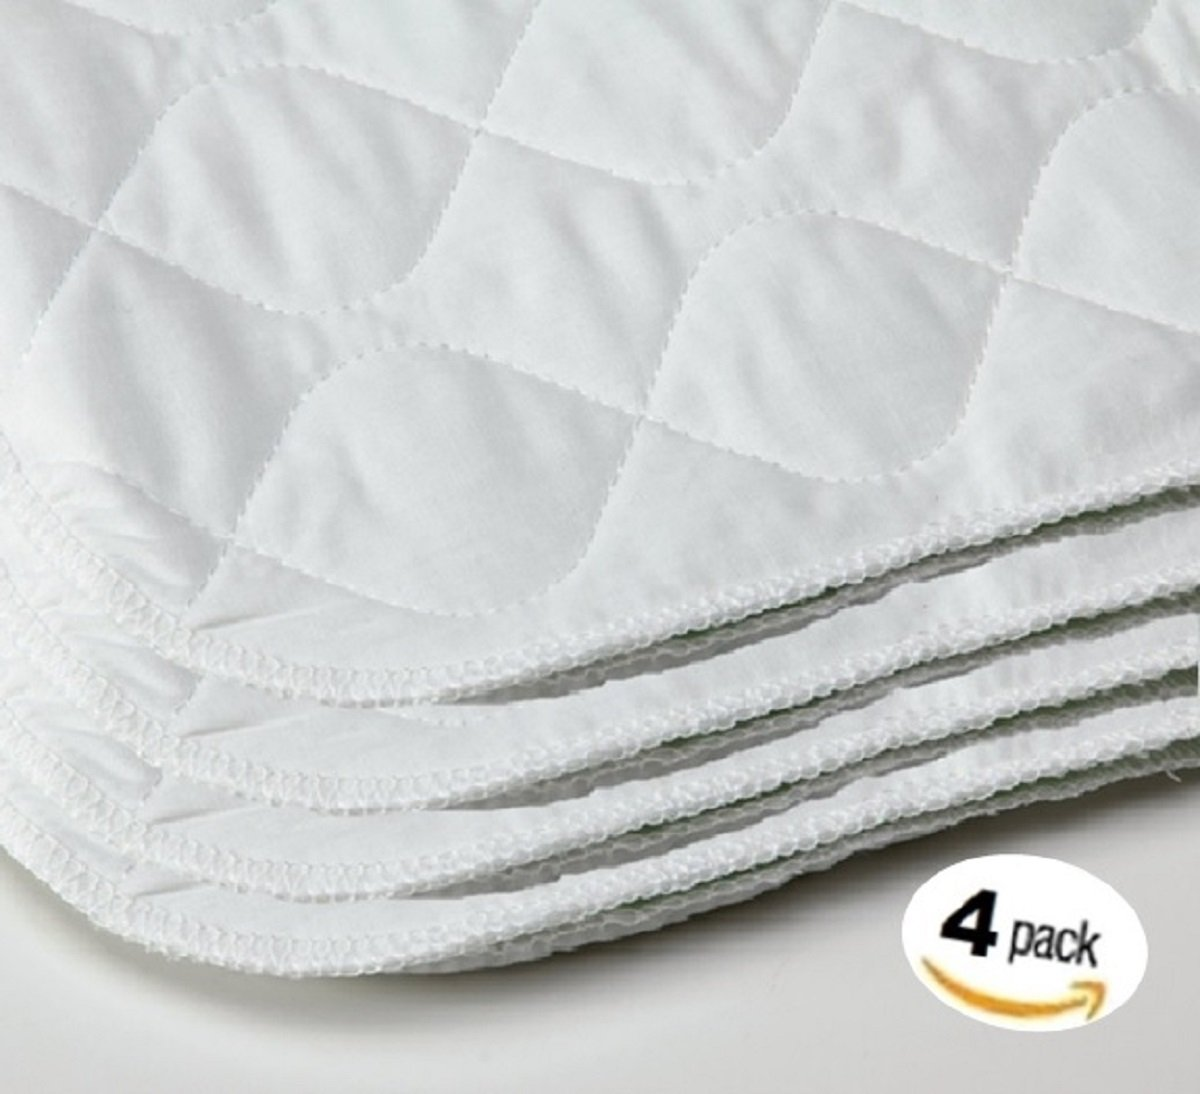 Deluxe Adsorbent Waterproof Bed Underpad - Mattress Sheet Protector - Will Absorb 6 Cups of Liquid - 34 x 36 inch, 4PK